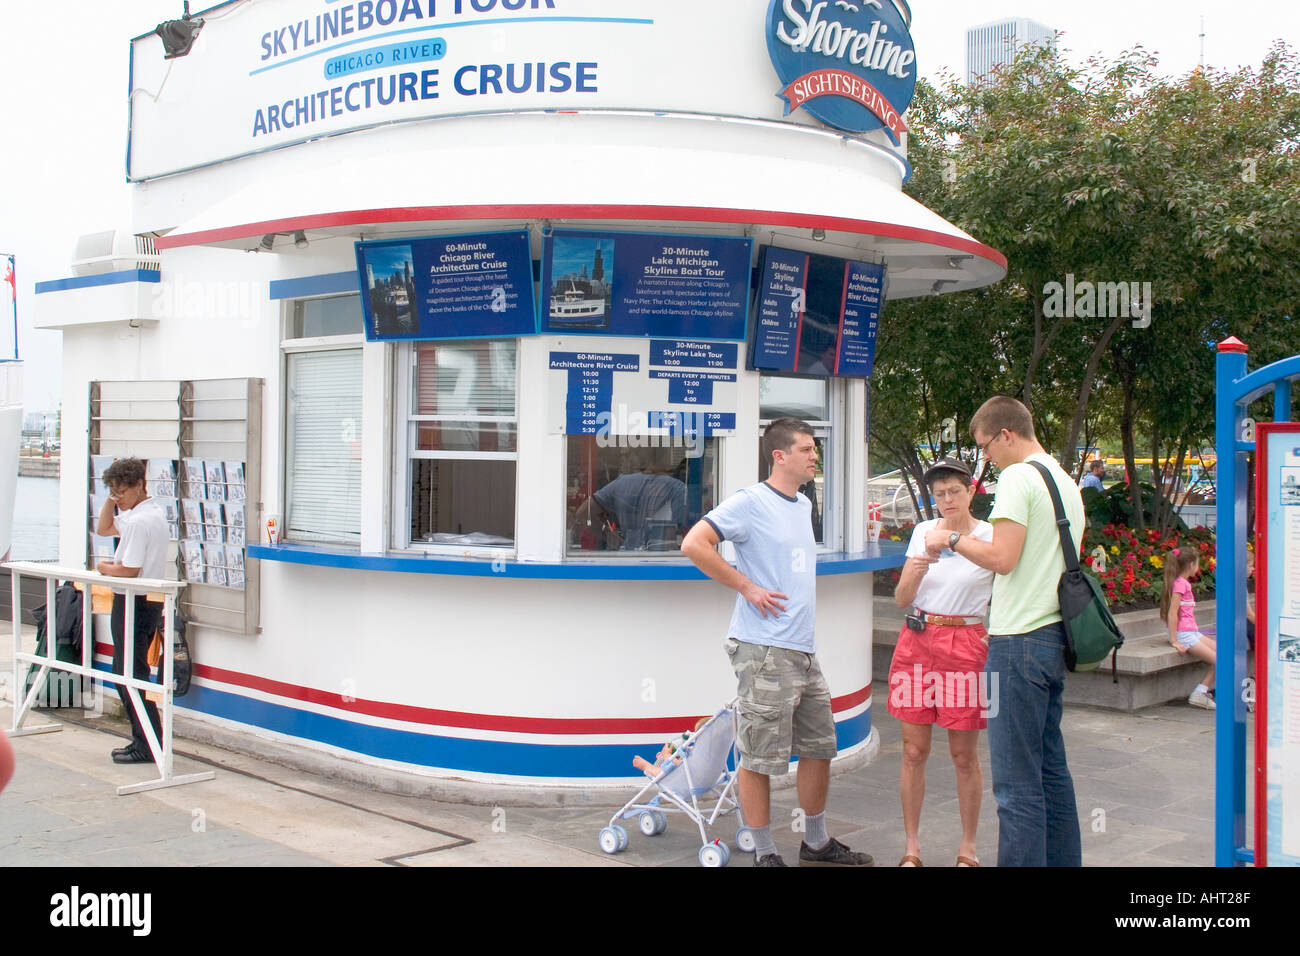 Ticket Booth For Sightseeing Boat Cruises At Navy Pier